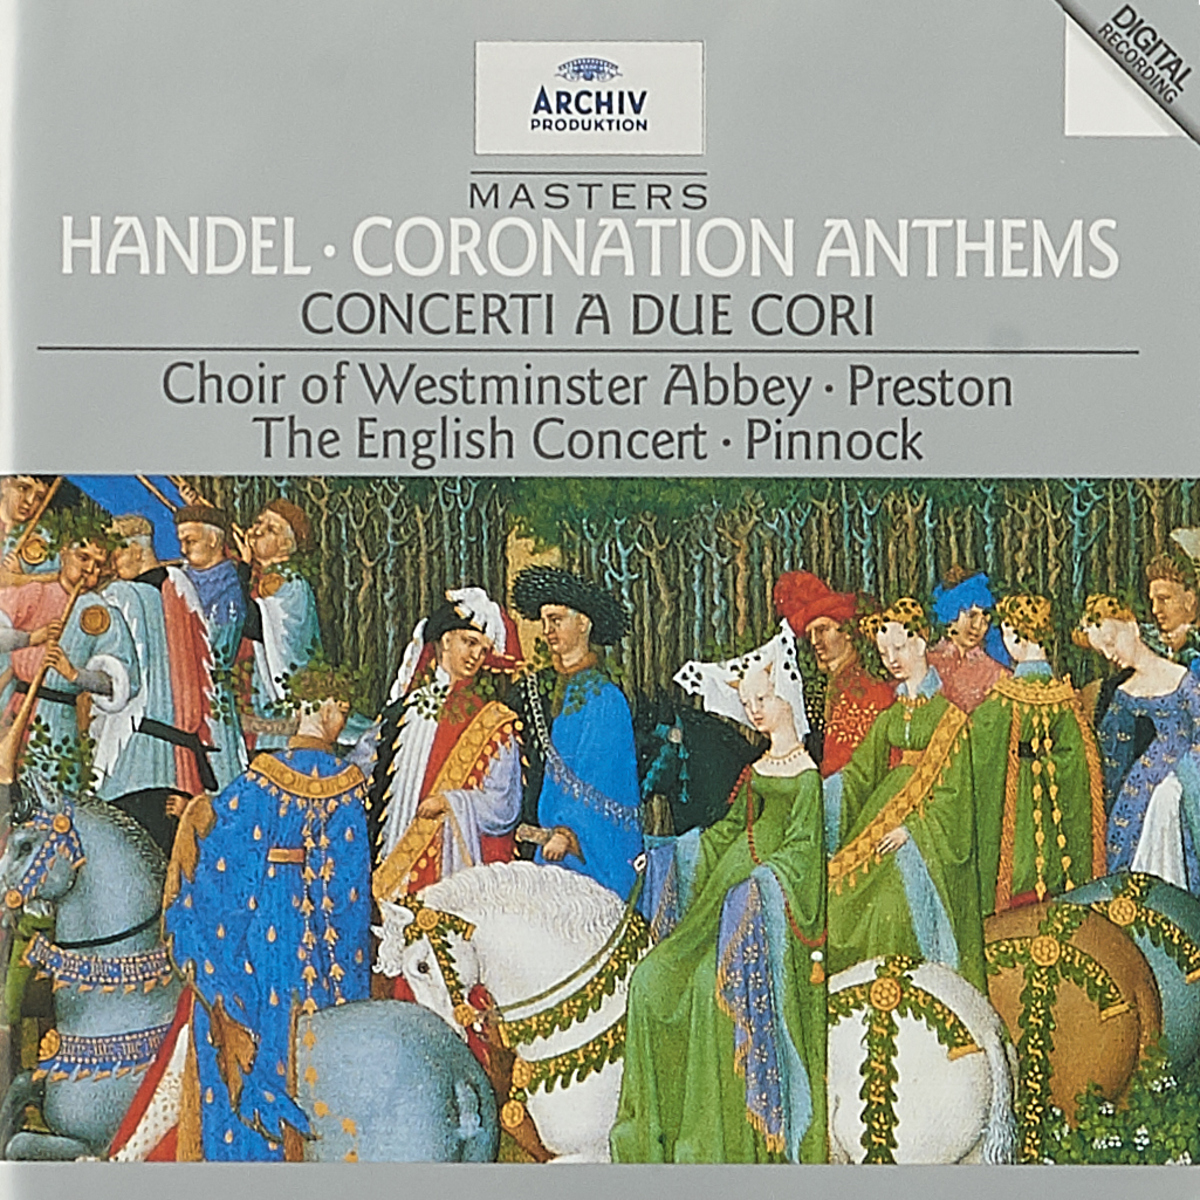 The English Concert Orchestra,Westminster Abbey Choir,Тревор Пиннок,Саймон Престон Trevor Pinnock / Simon Preston. Handel: Coronation Anthems j v roberts postlude in f major